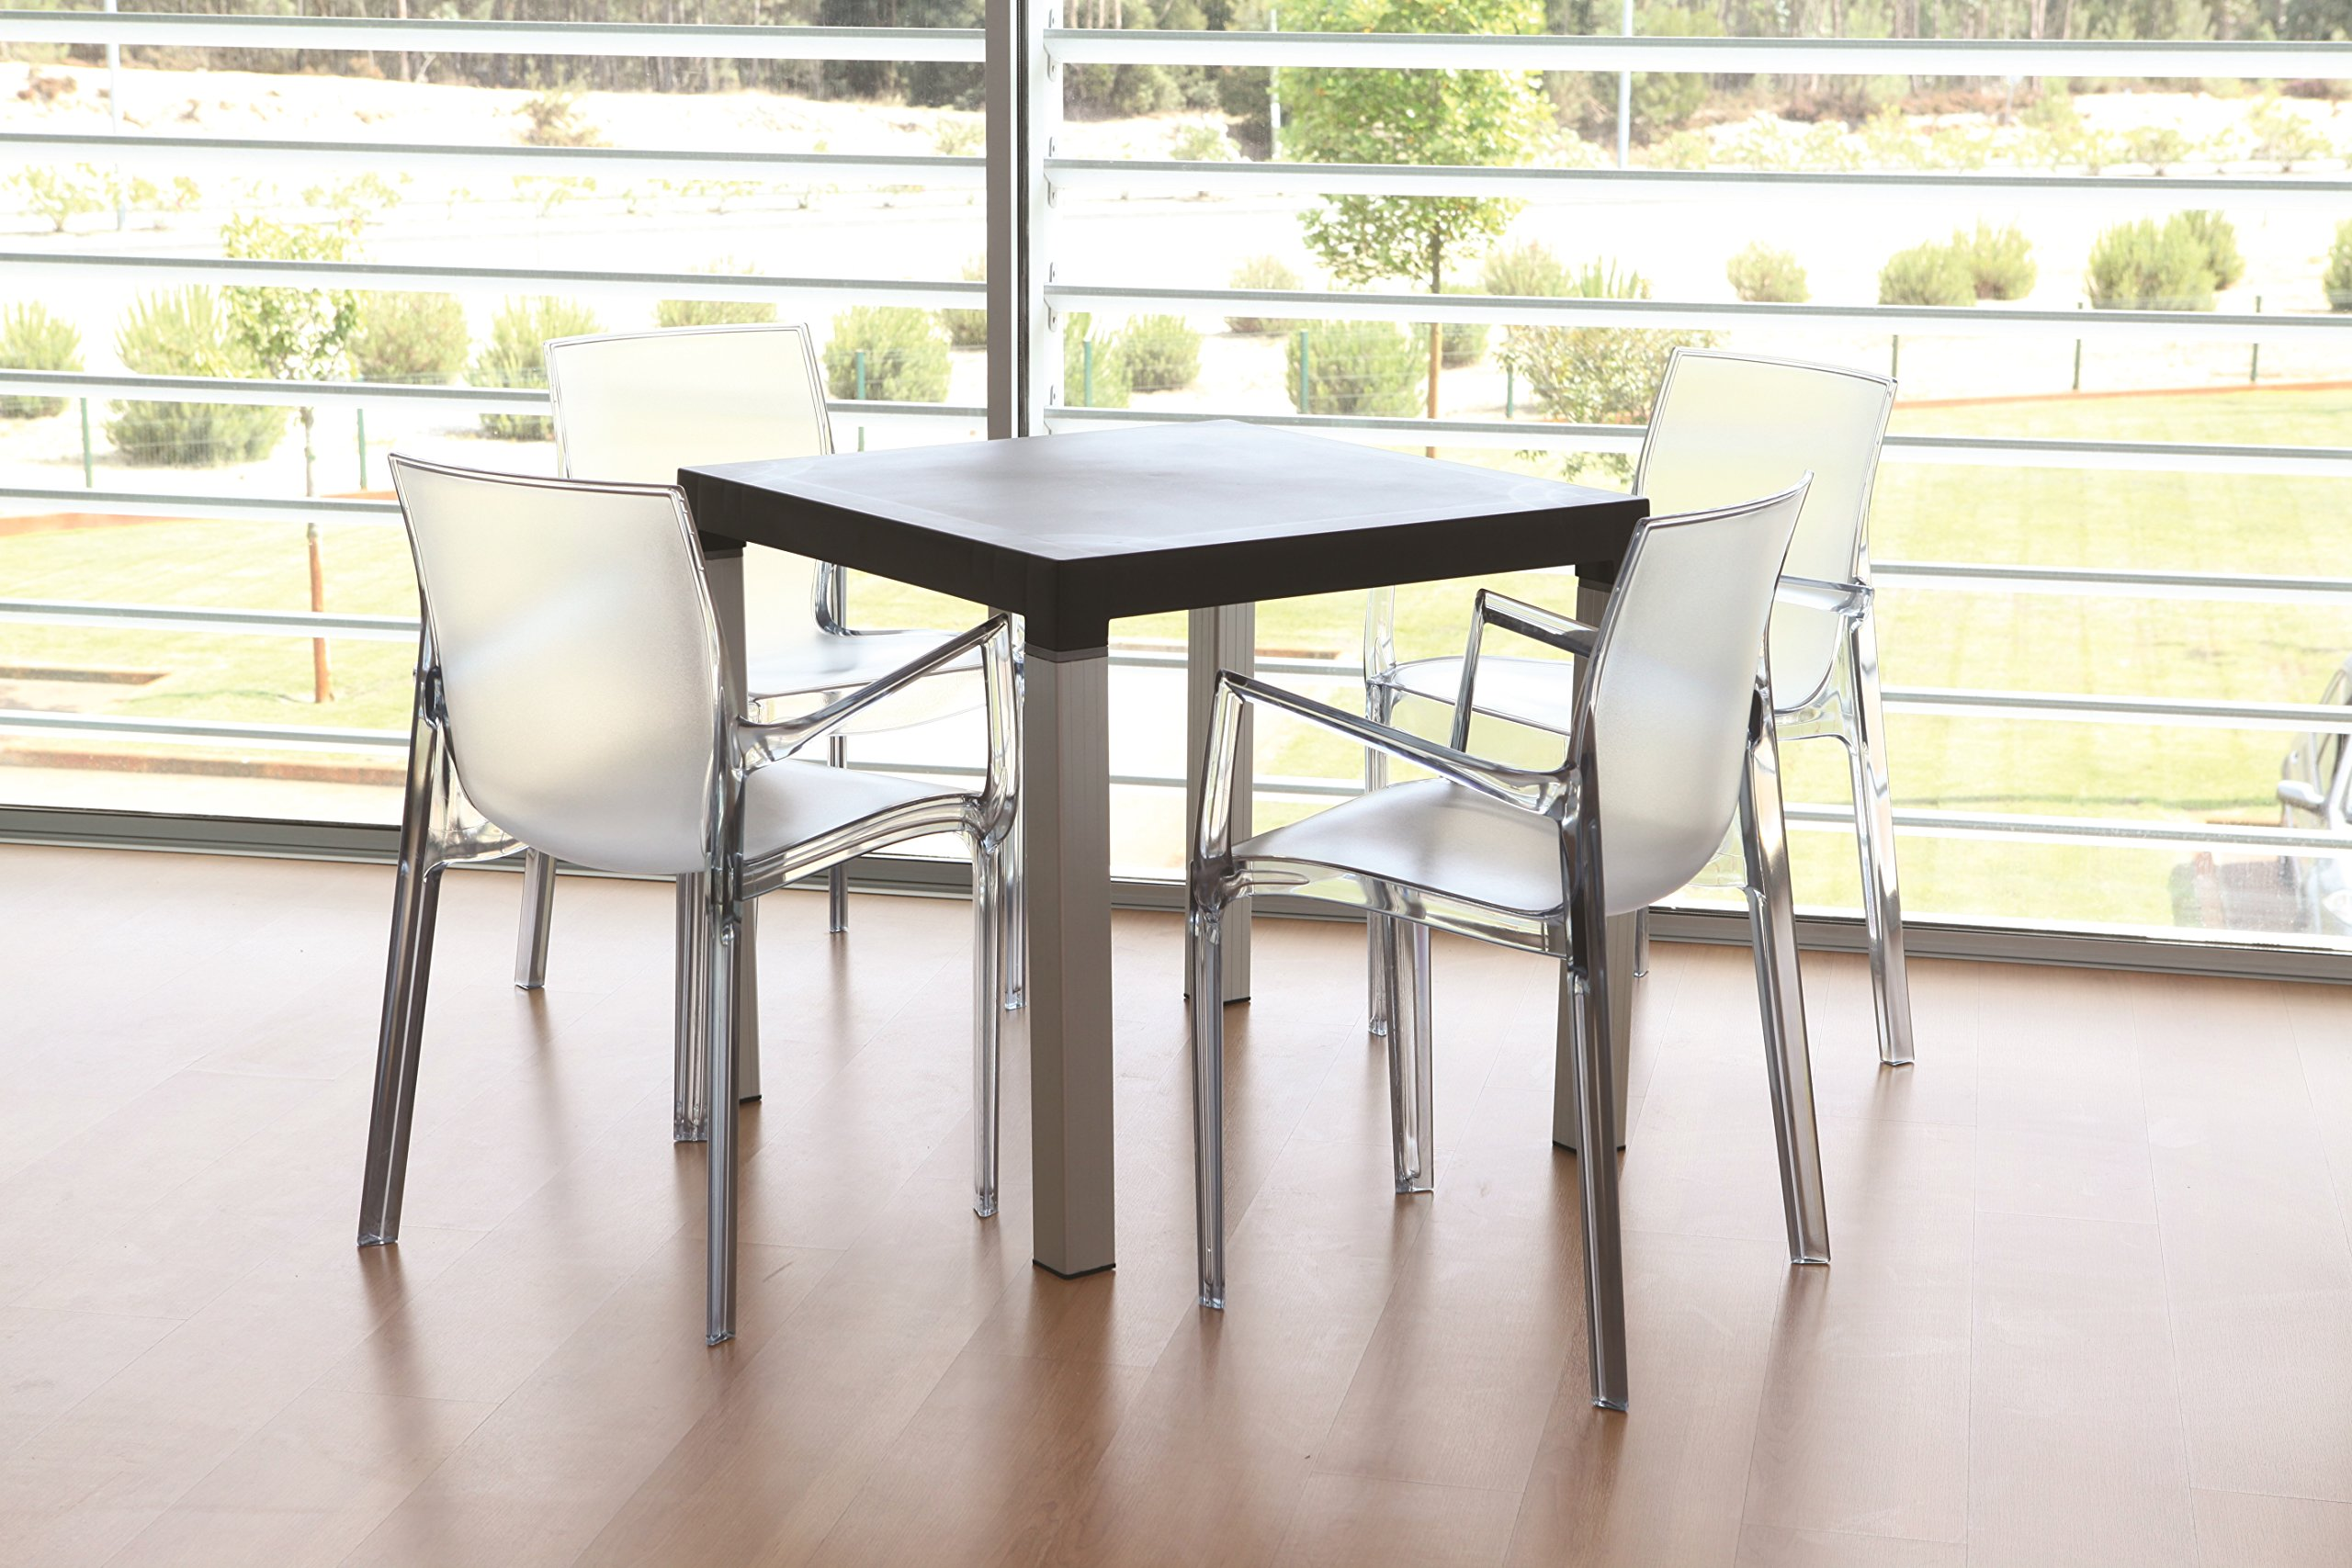 Tensai Iris Collection Narrow Square Back Durable Plastic  Chairs - Transparent - Set of 4 by Tensai